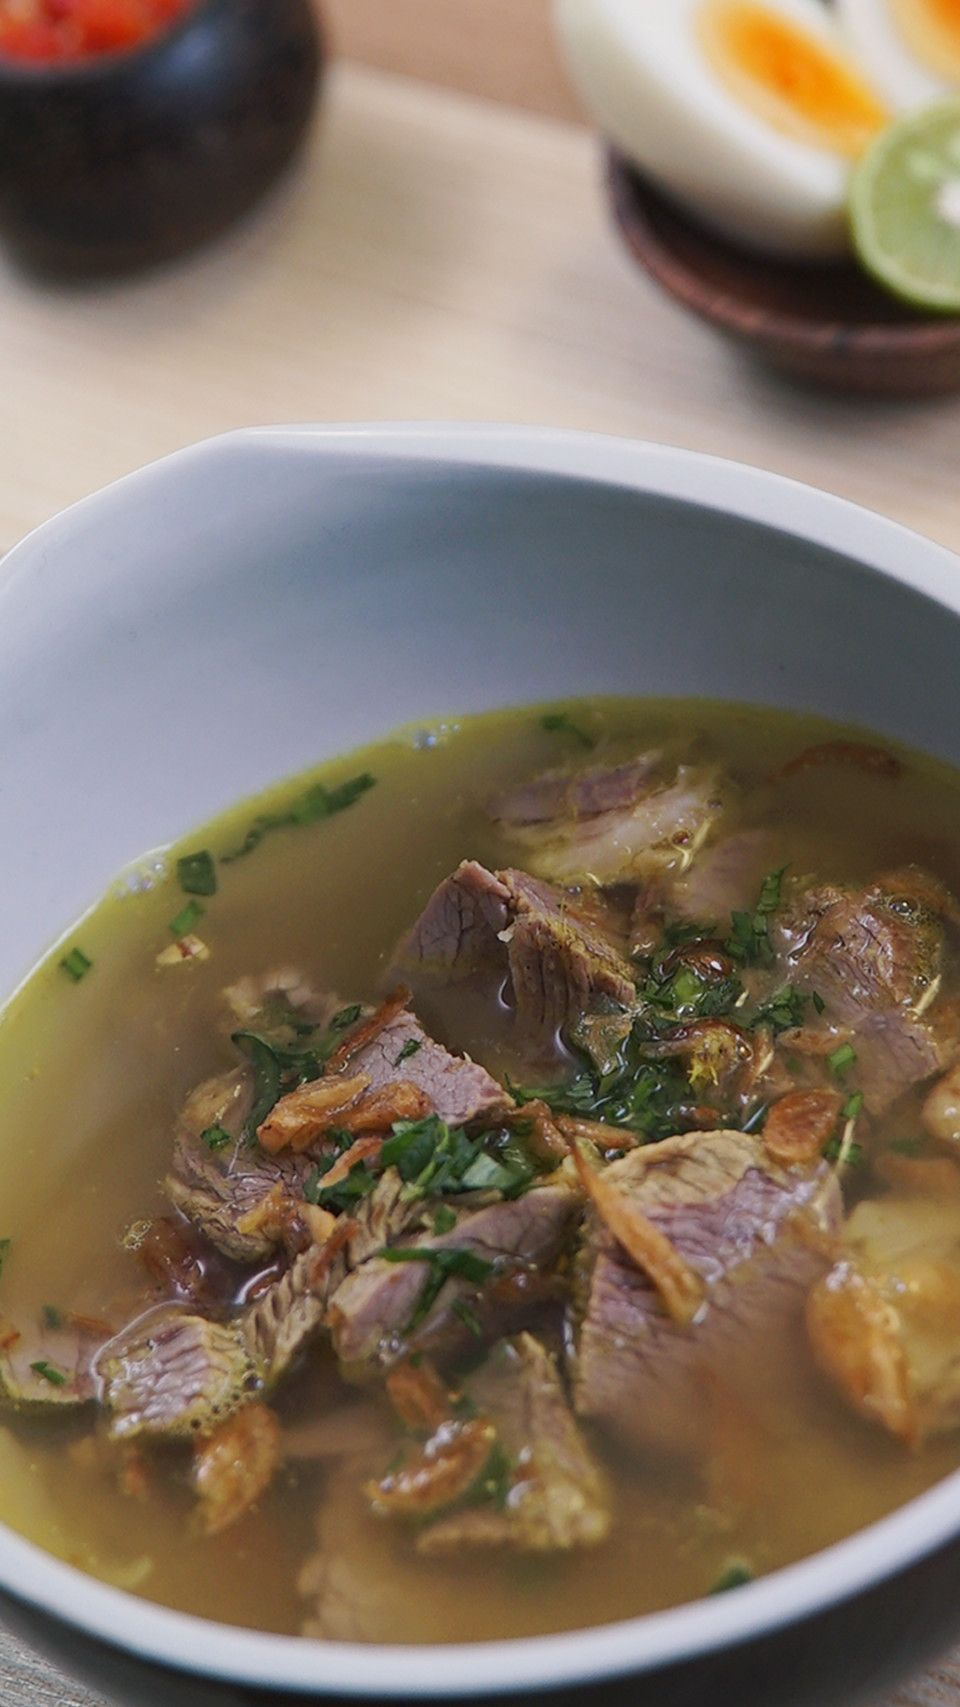 Resep Soto Sulung : resep, sulung, Sulung, Resep, Recipe, Asian, Recipes,, Indian, Receipes